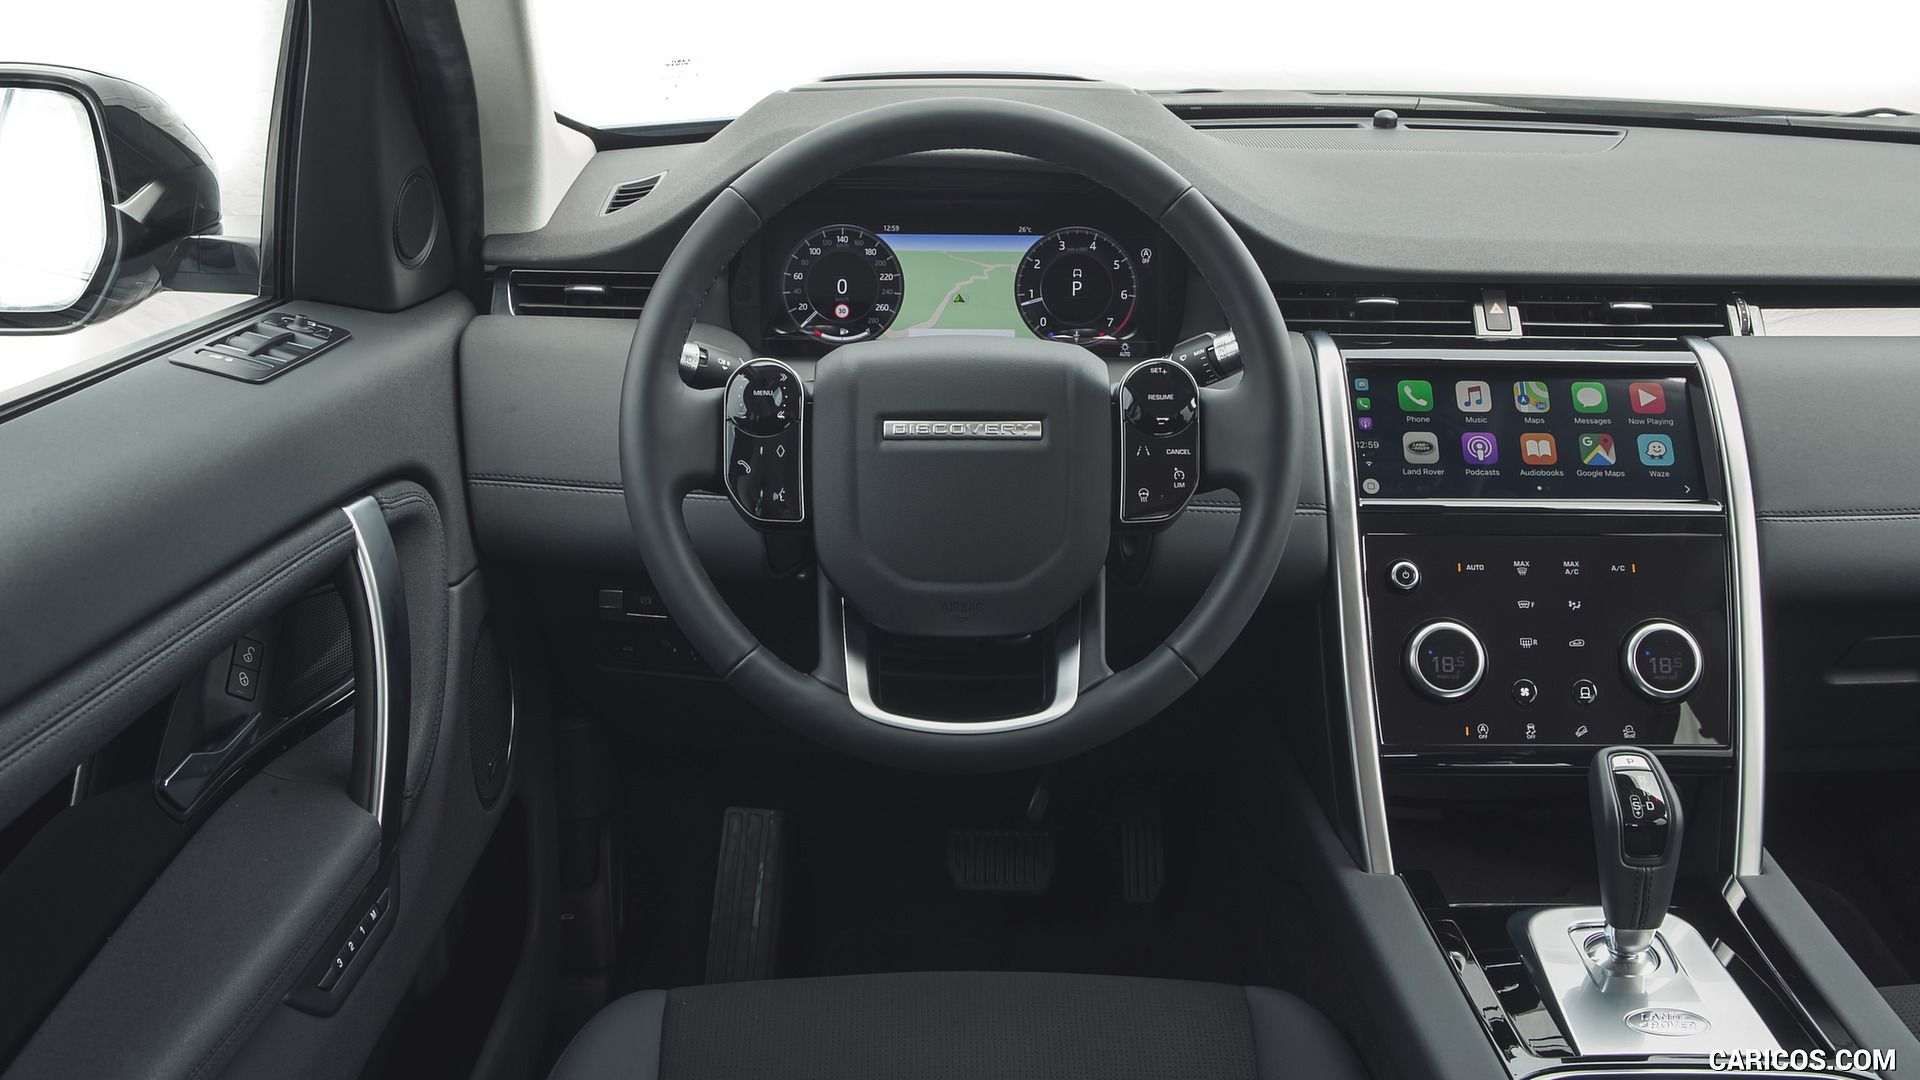 Pin by Mal on Cars in 2020 Land rover, Land rover